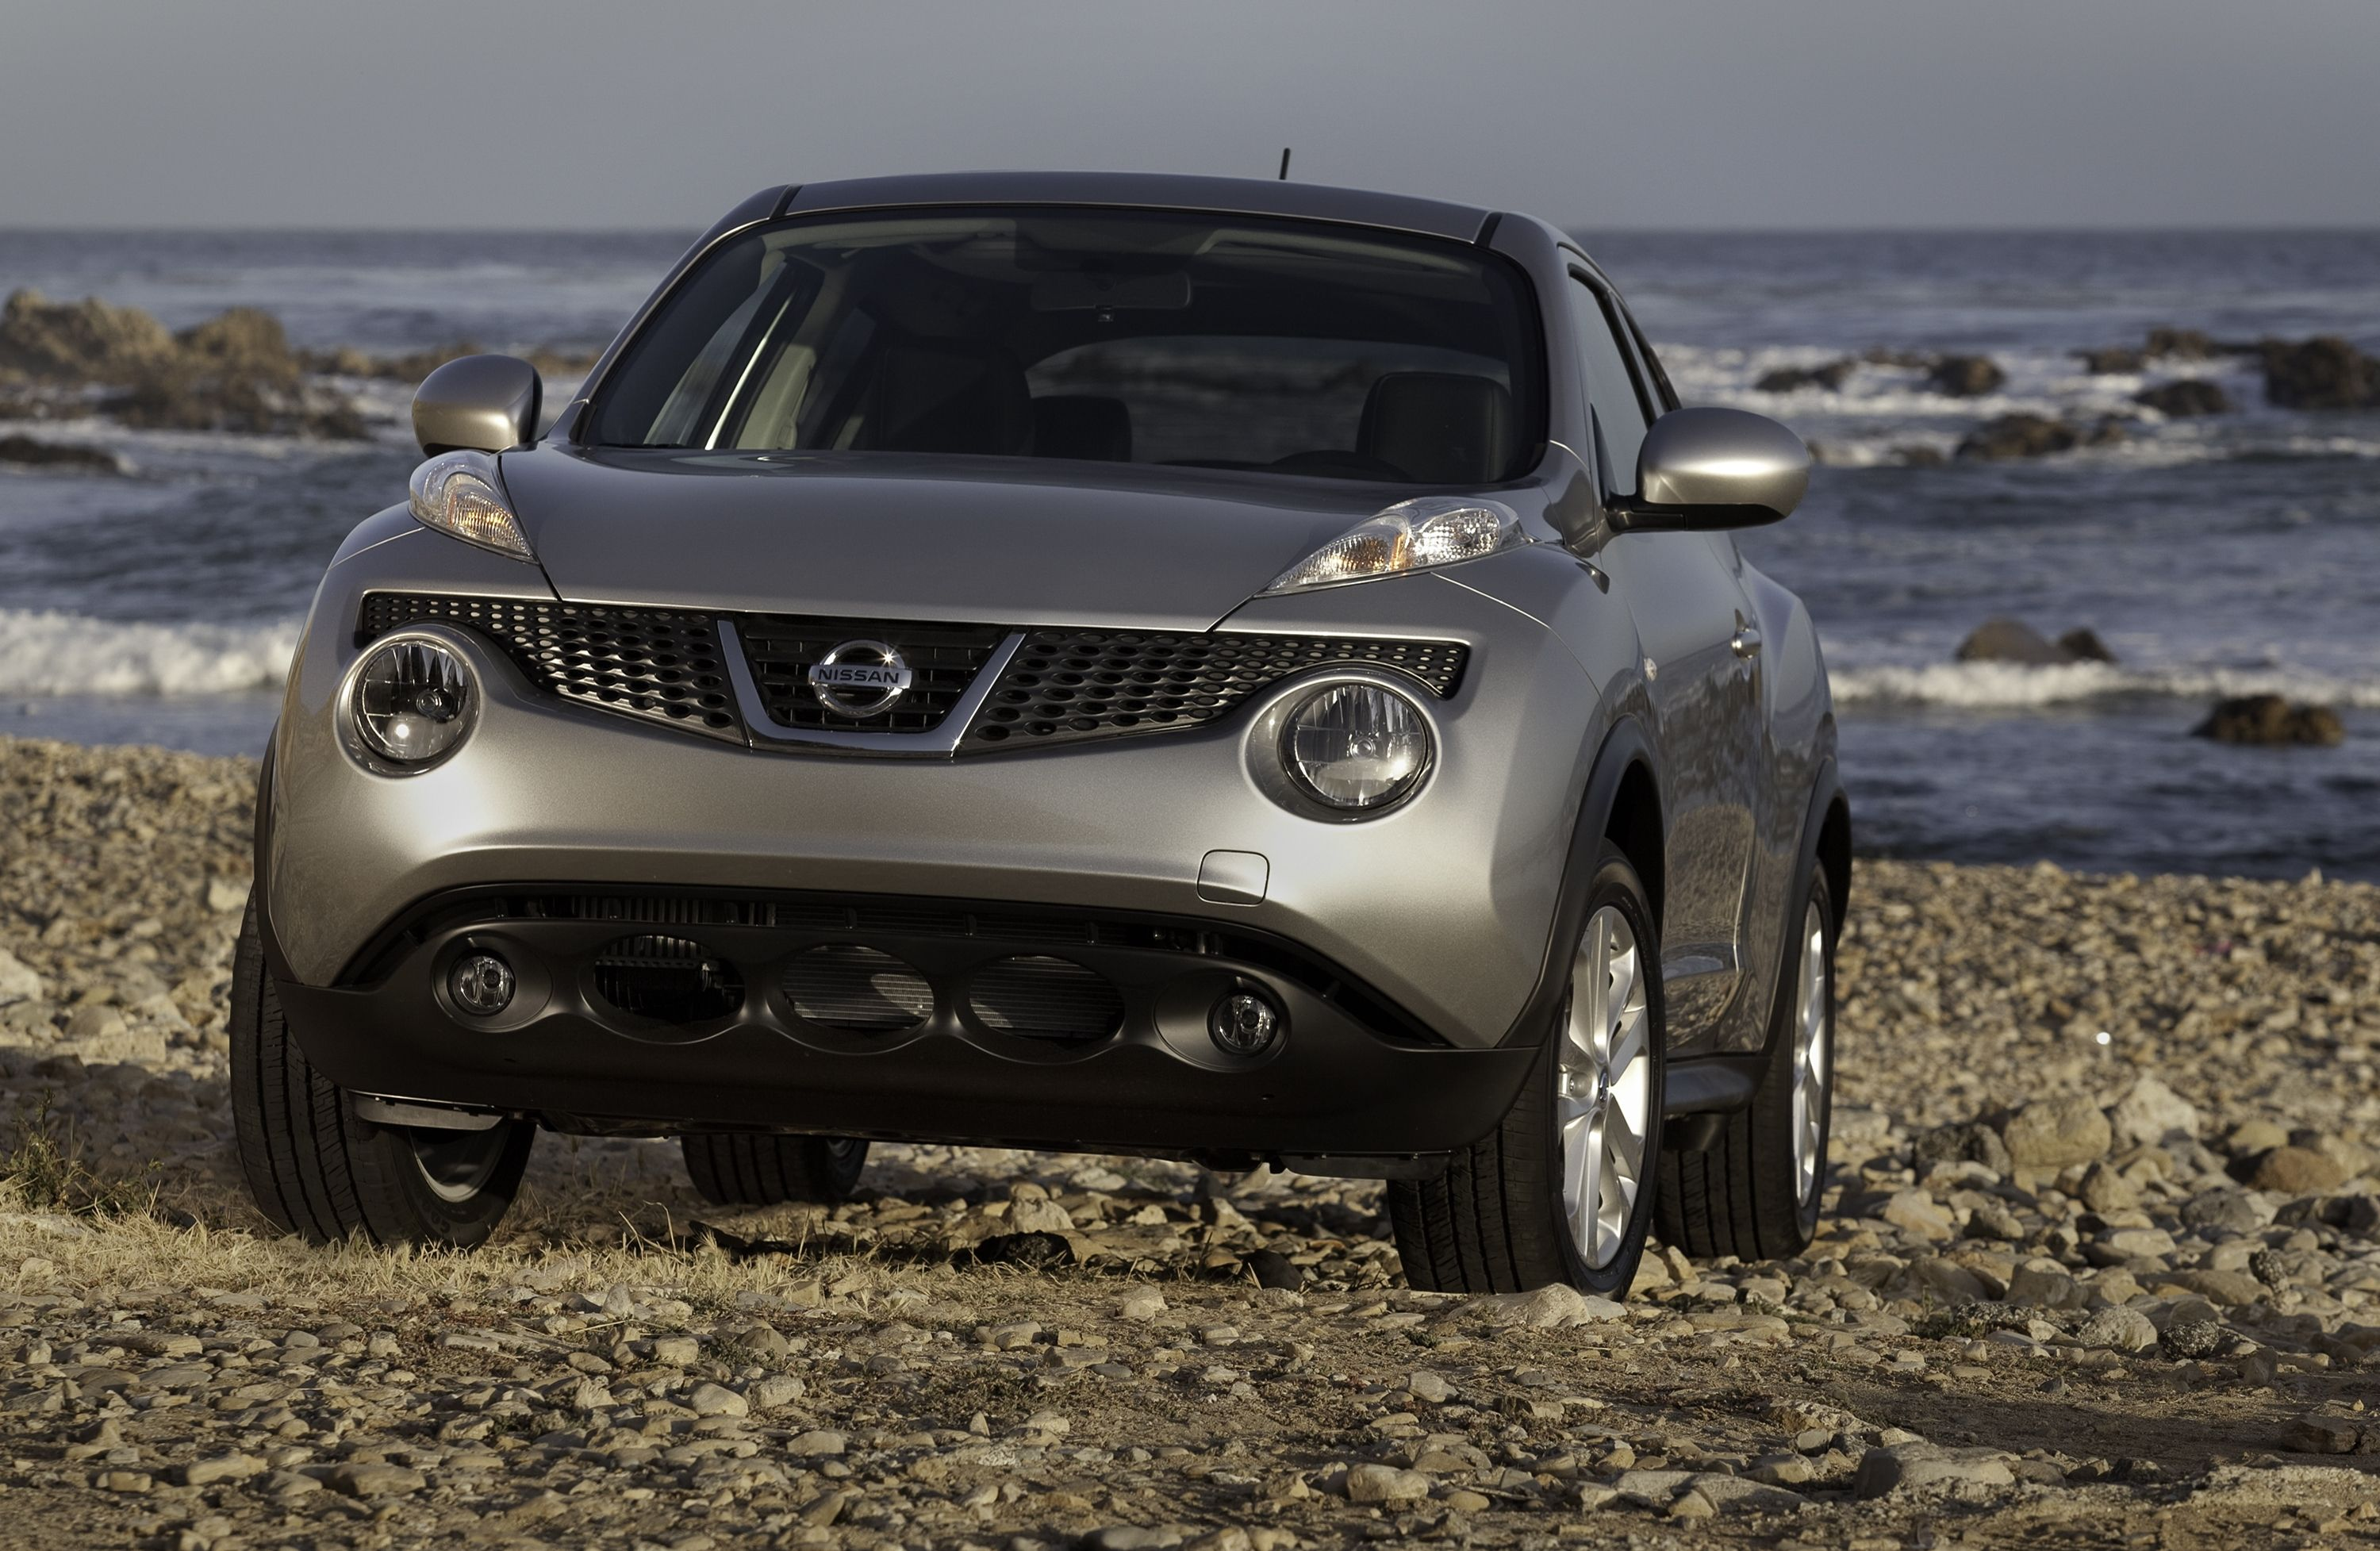 87ac9f6e8152a69e8813a7aa5c886a52 Take A Look About Nissan Juke Custom with Fabulous Photos Cars Review